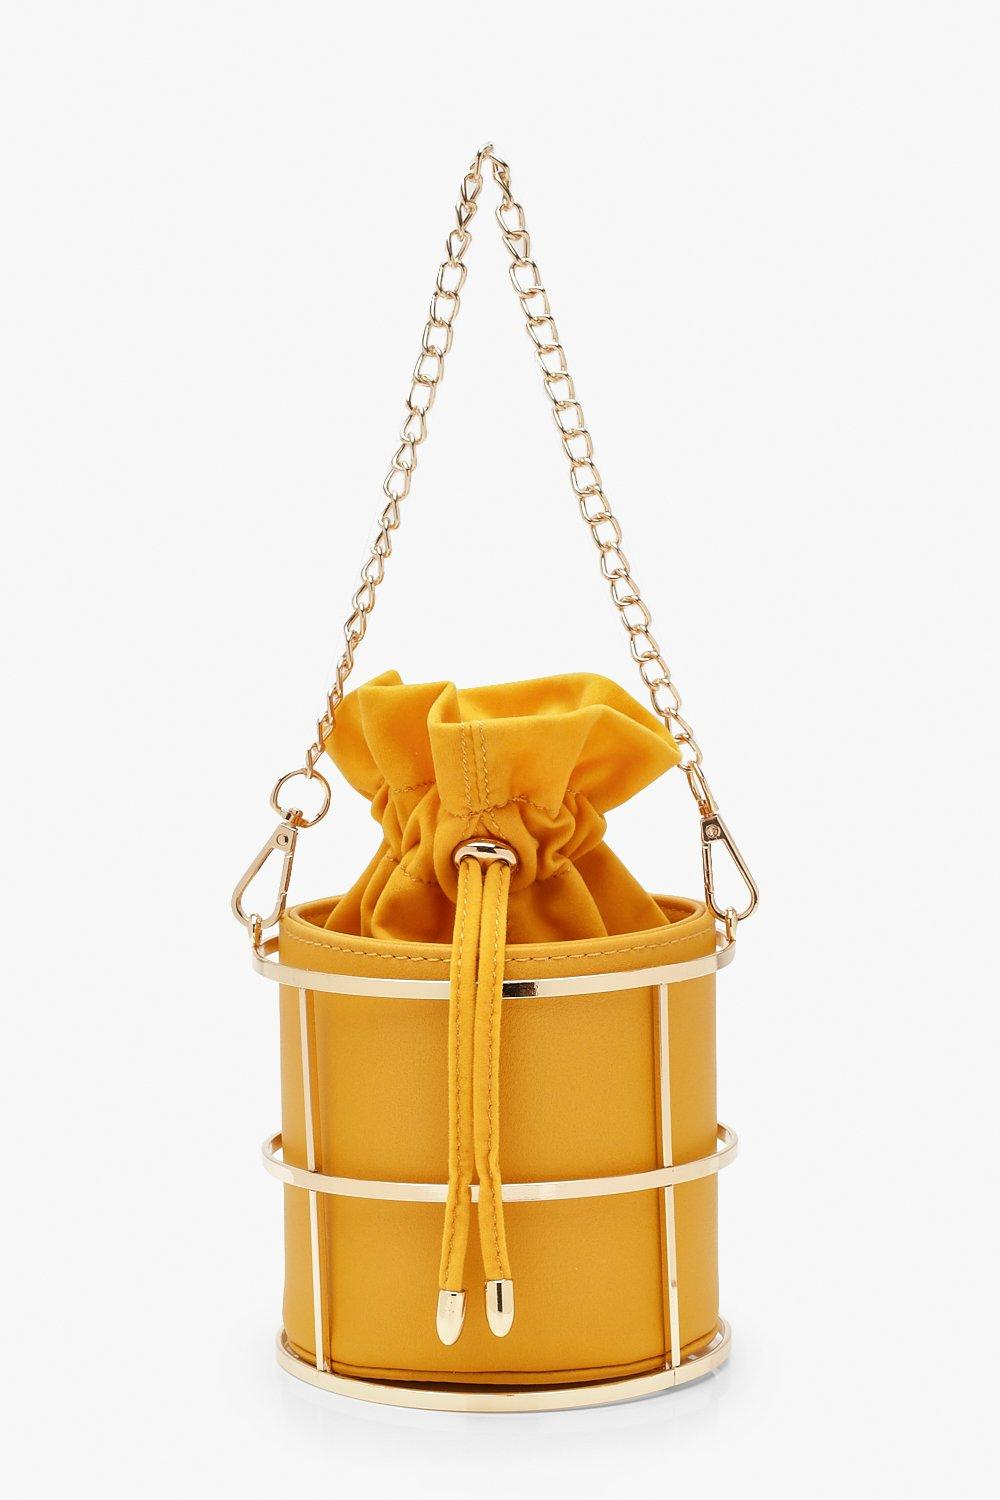 Image result for A metal cage mini duffle